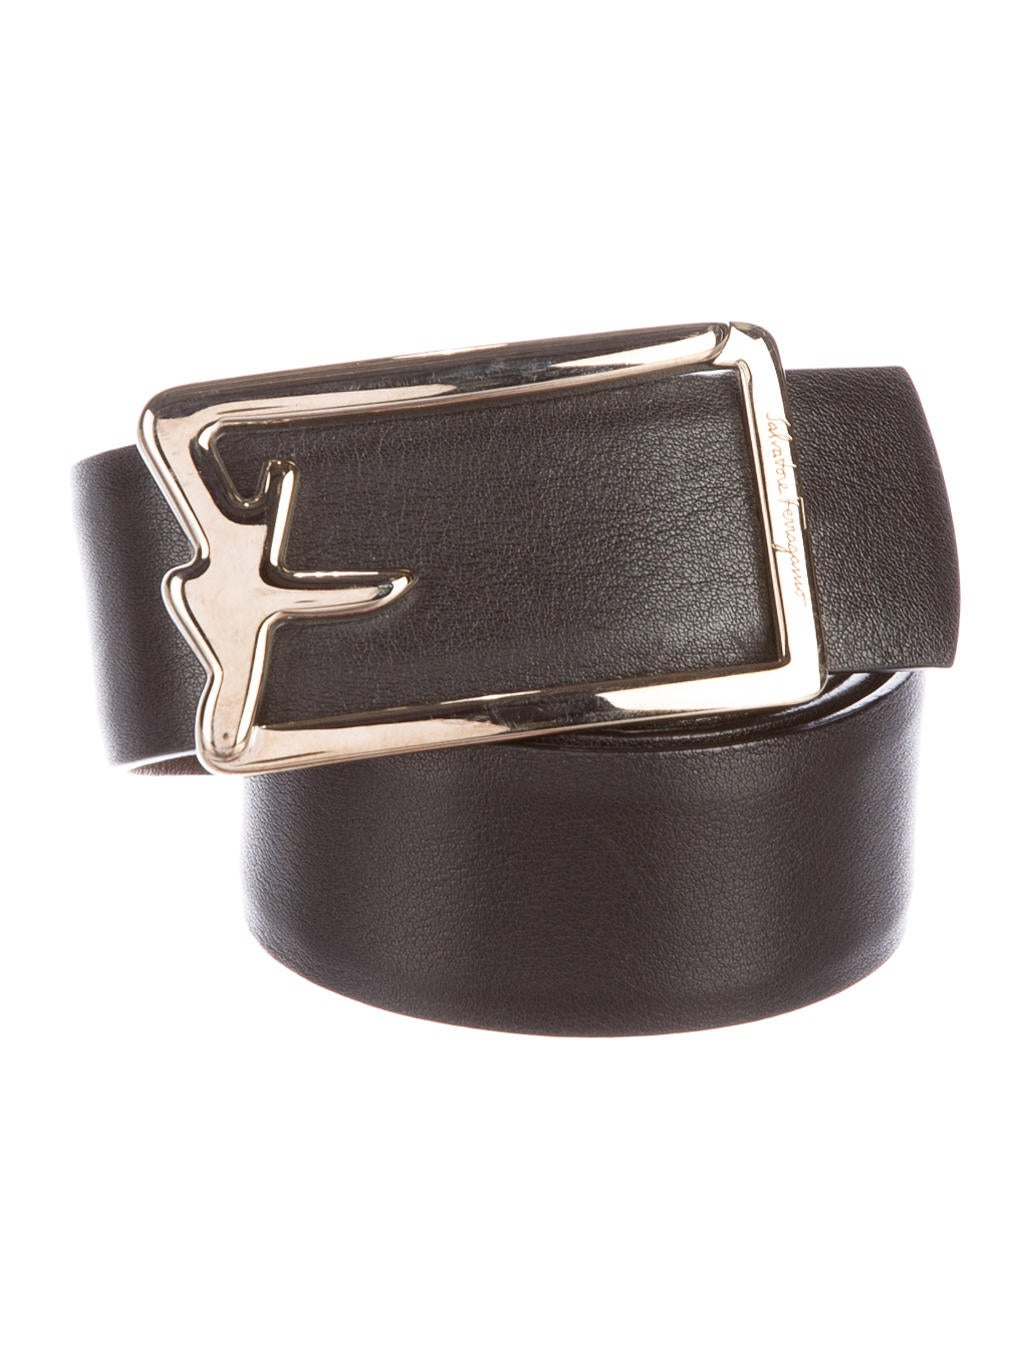 Salvatore Ferragamo Leather Buckle Belt - Accessories - SAL42972 - The ...